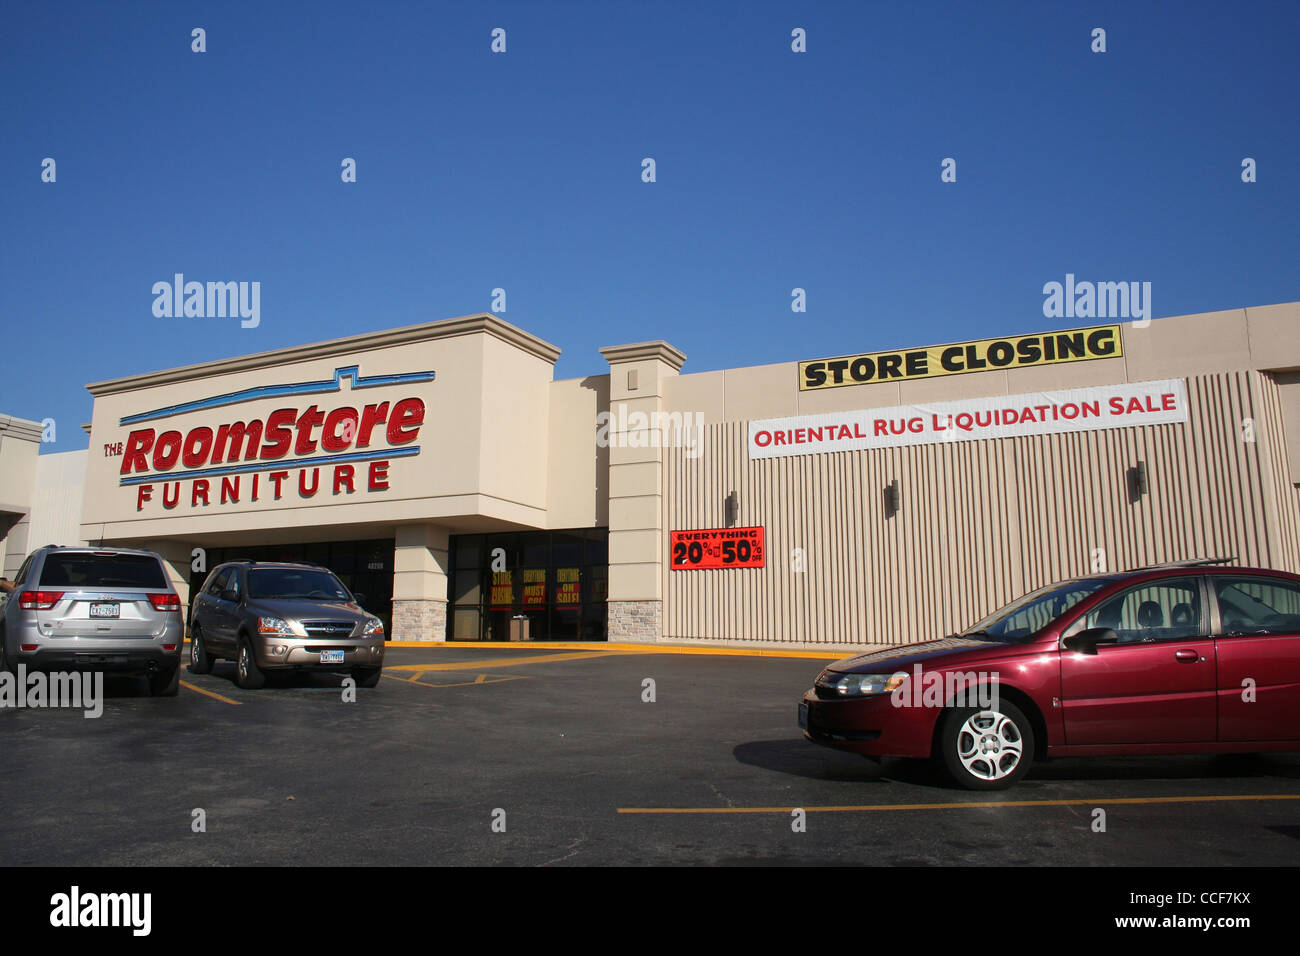 The Roomstore Furniture Store Closing Sale Tyler Tx January